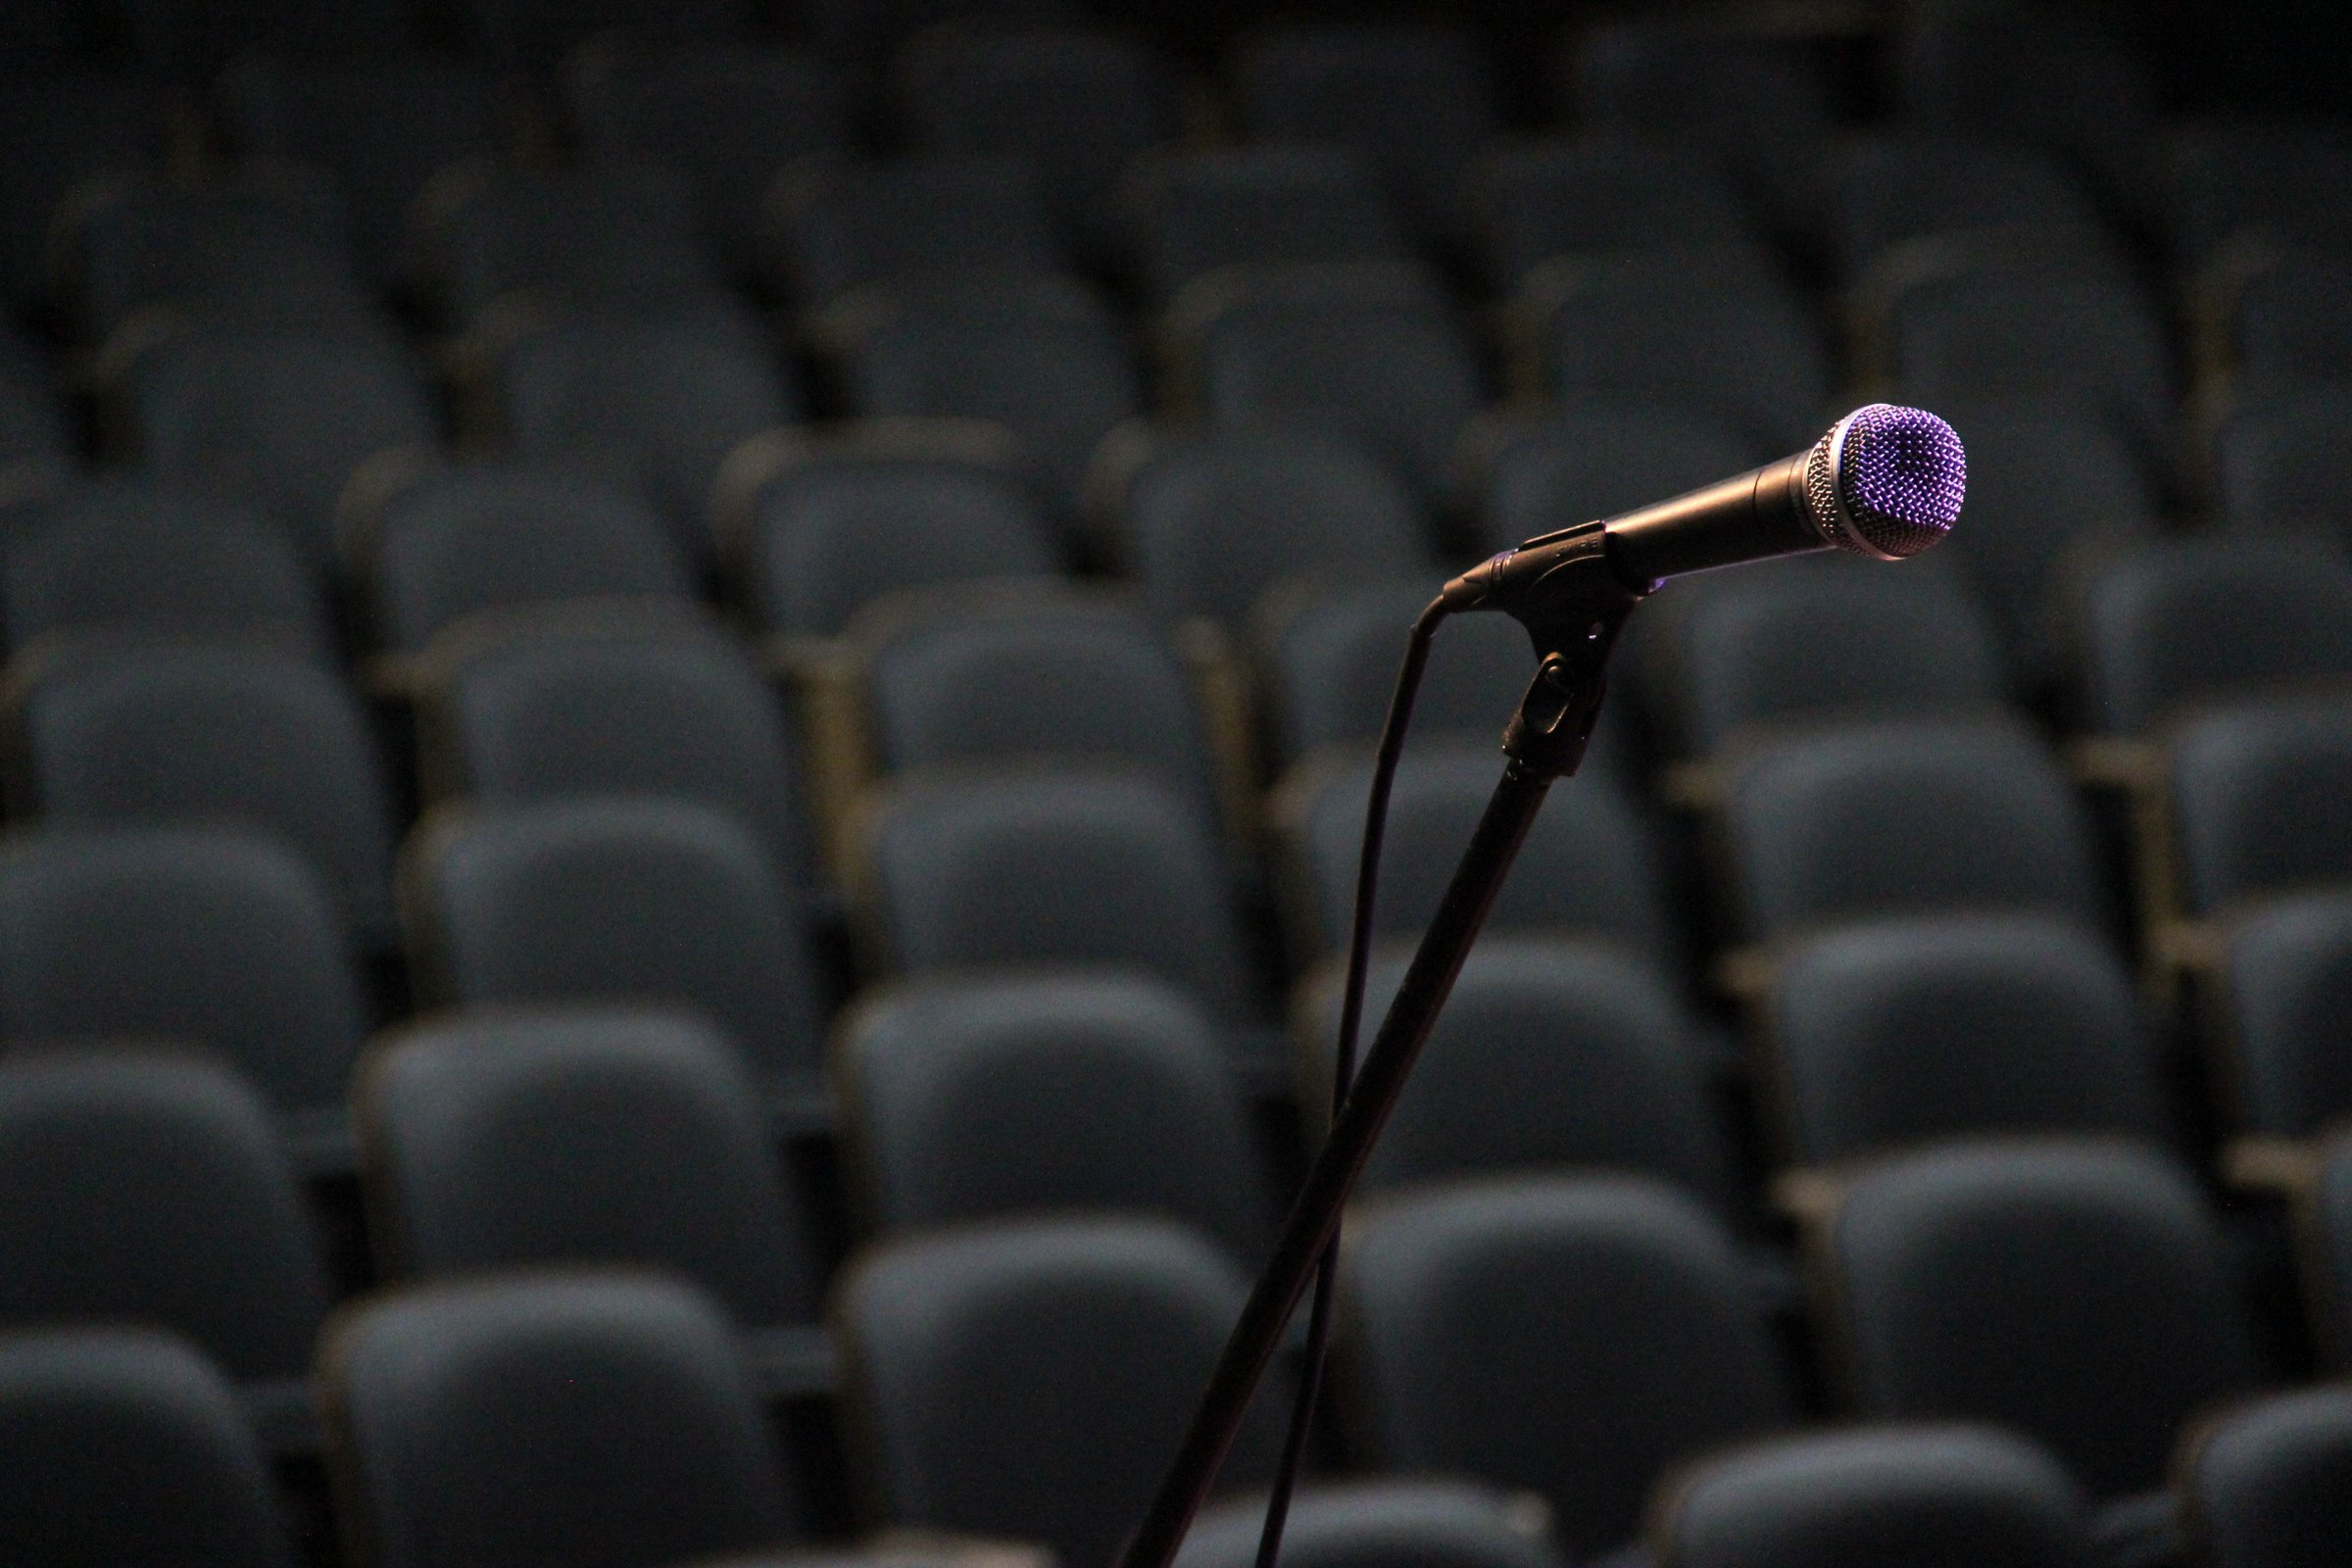 Microphone on Stand in Front of Empty Chairs